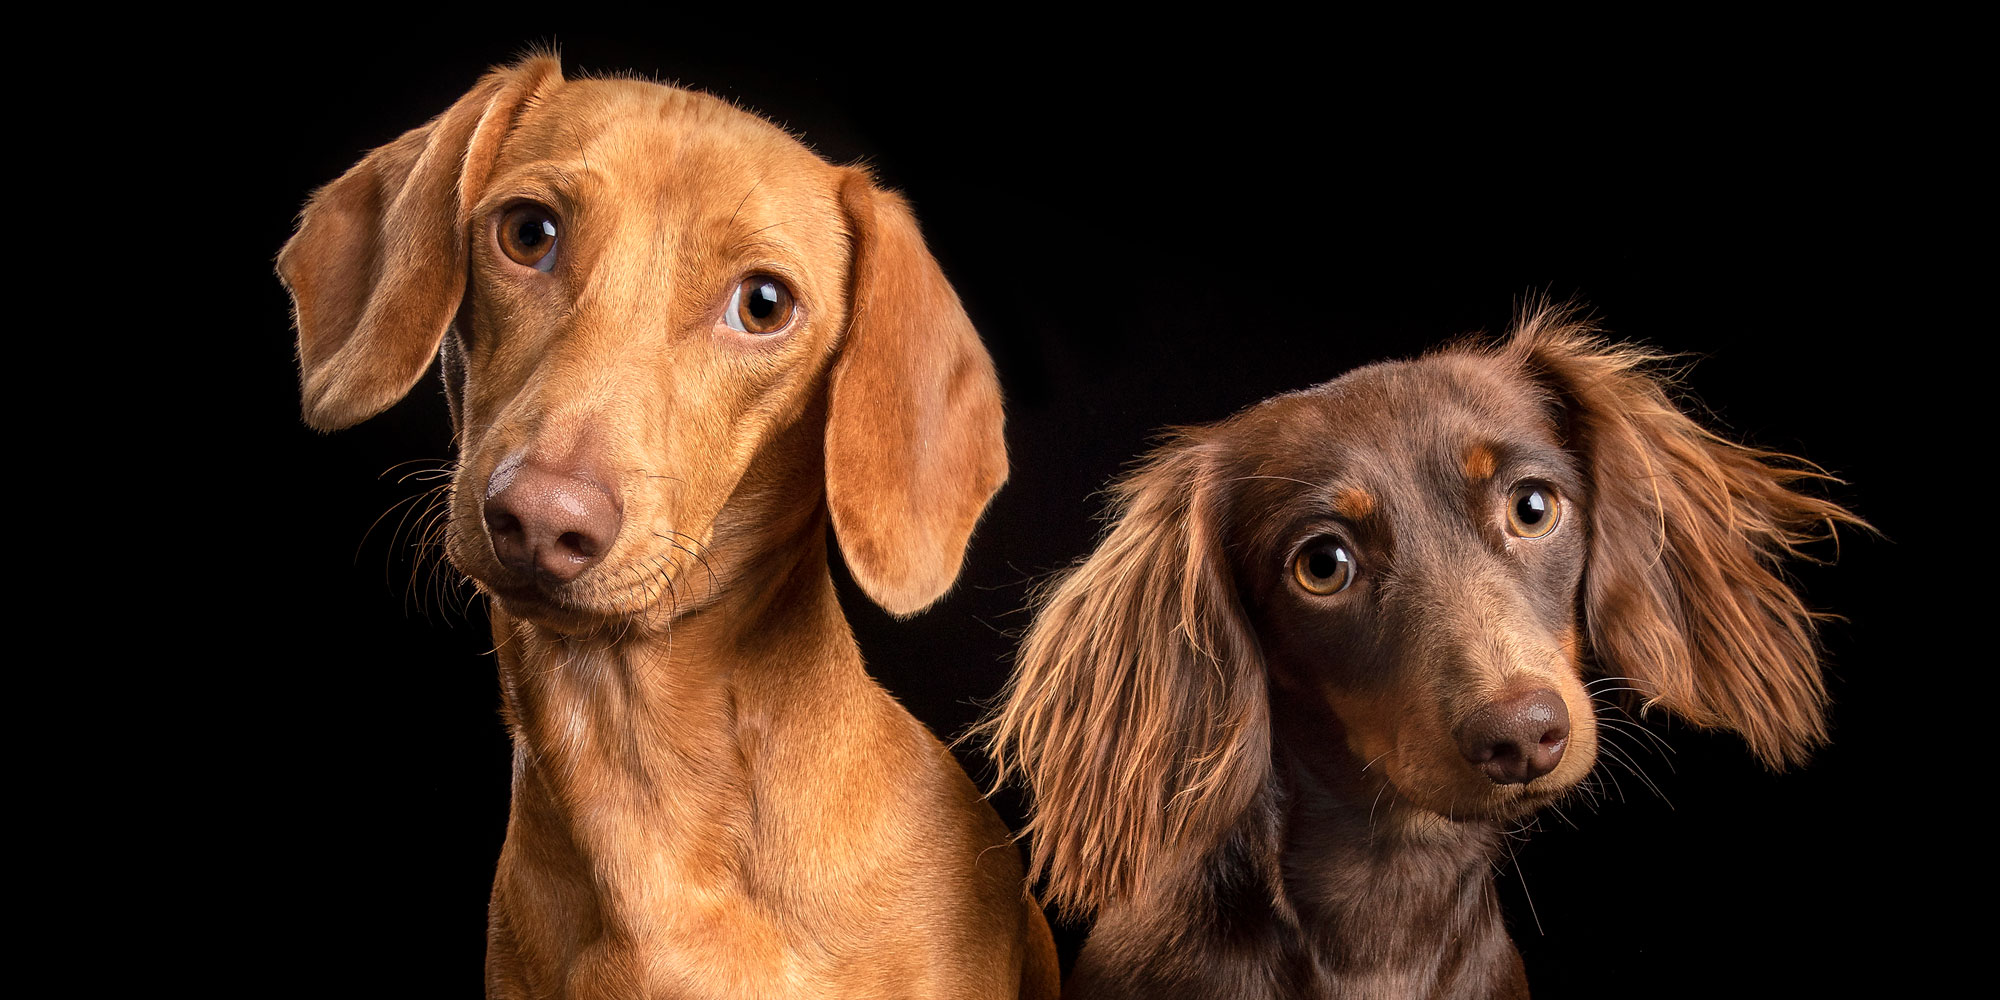 fur sibling dachshunds  sitting close red boy and chocolate girl